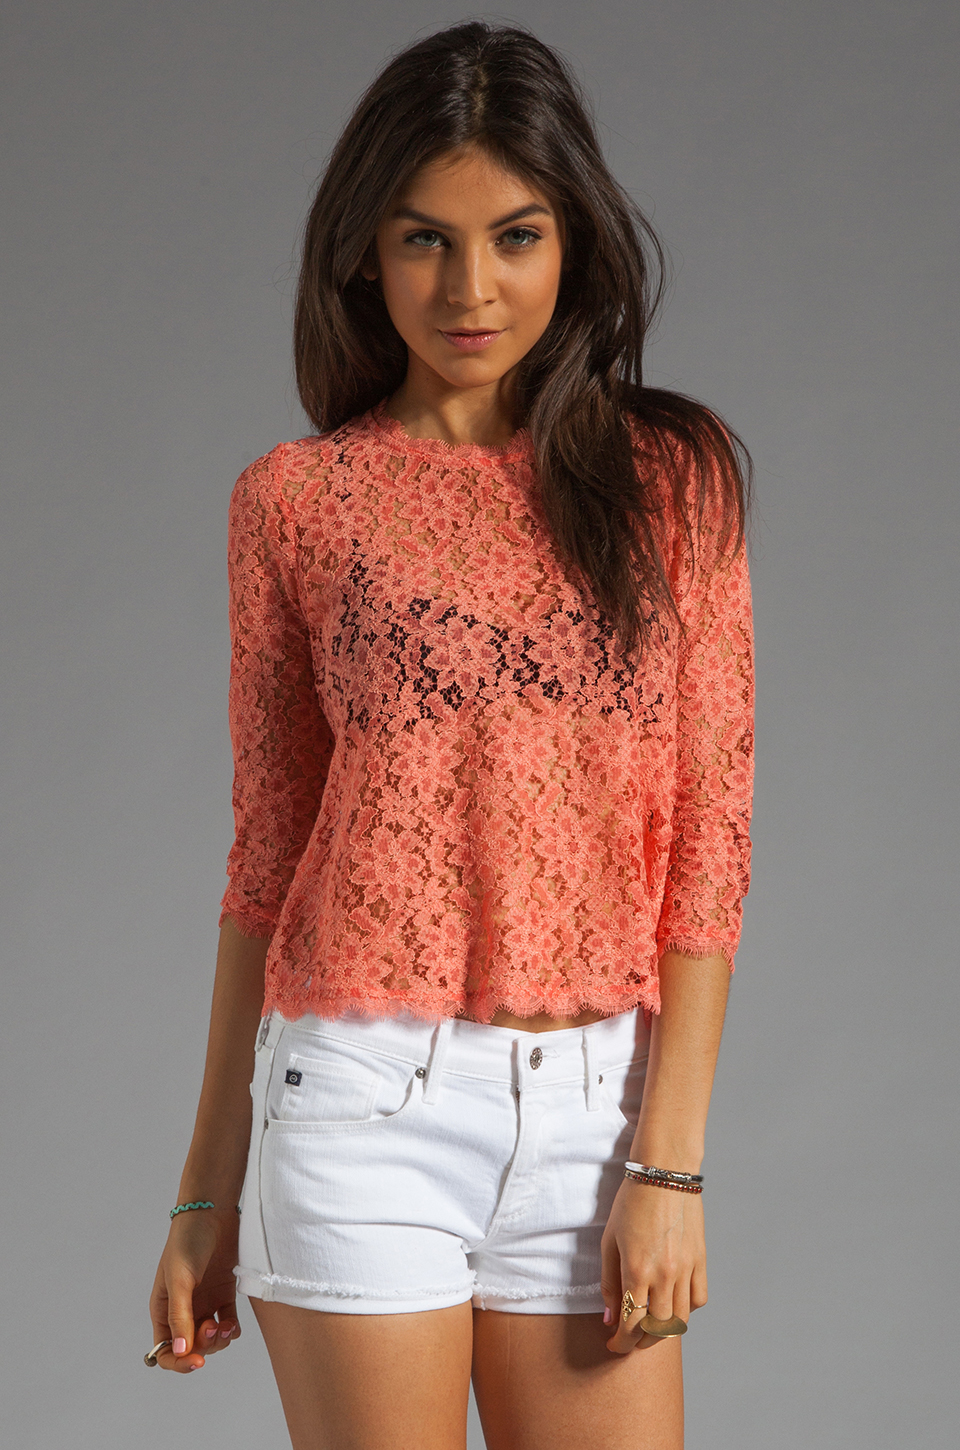 Dolce Vita Deidra Raised Lace Blouse in Coral